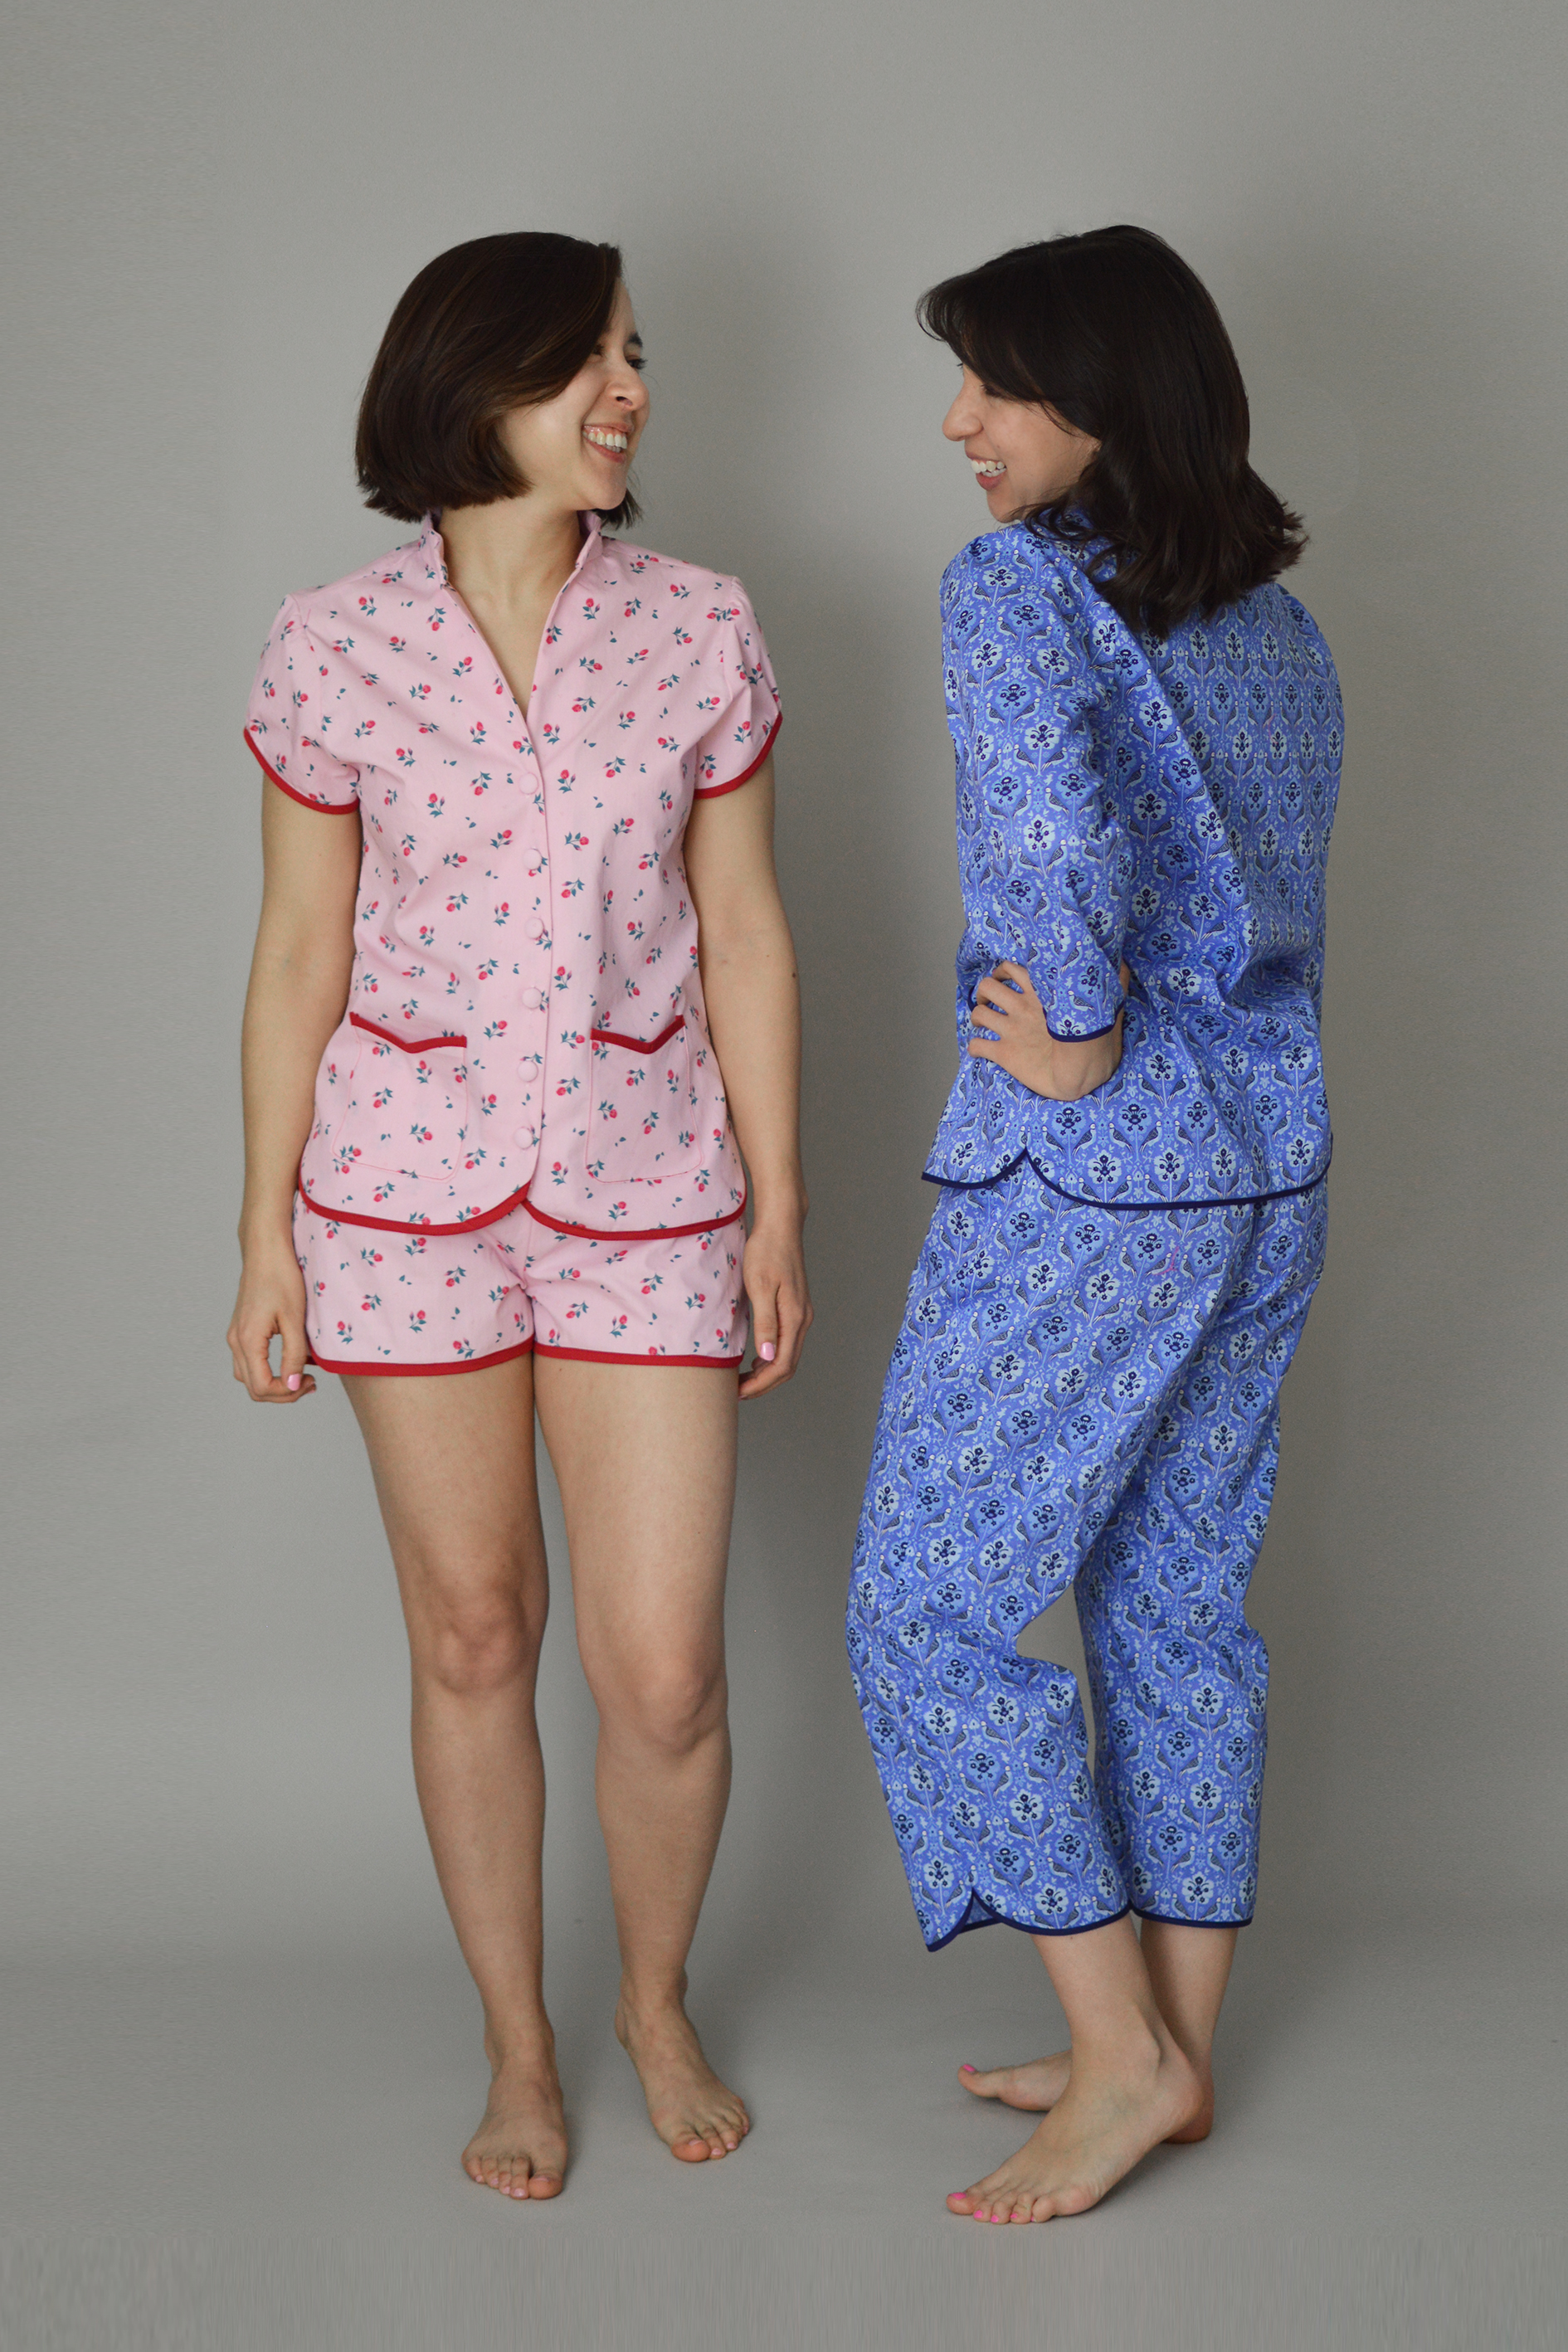 The Piccadilly Pyjamas – inspiration, testers' makes and fabric suggestions!